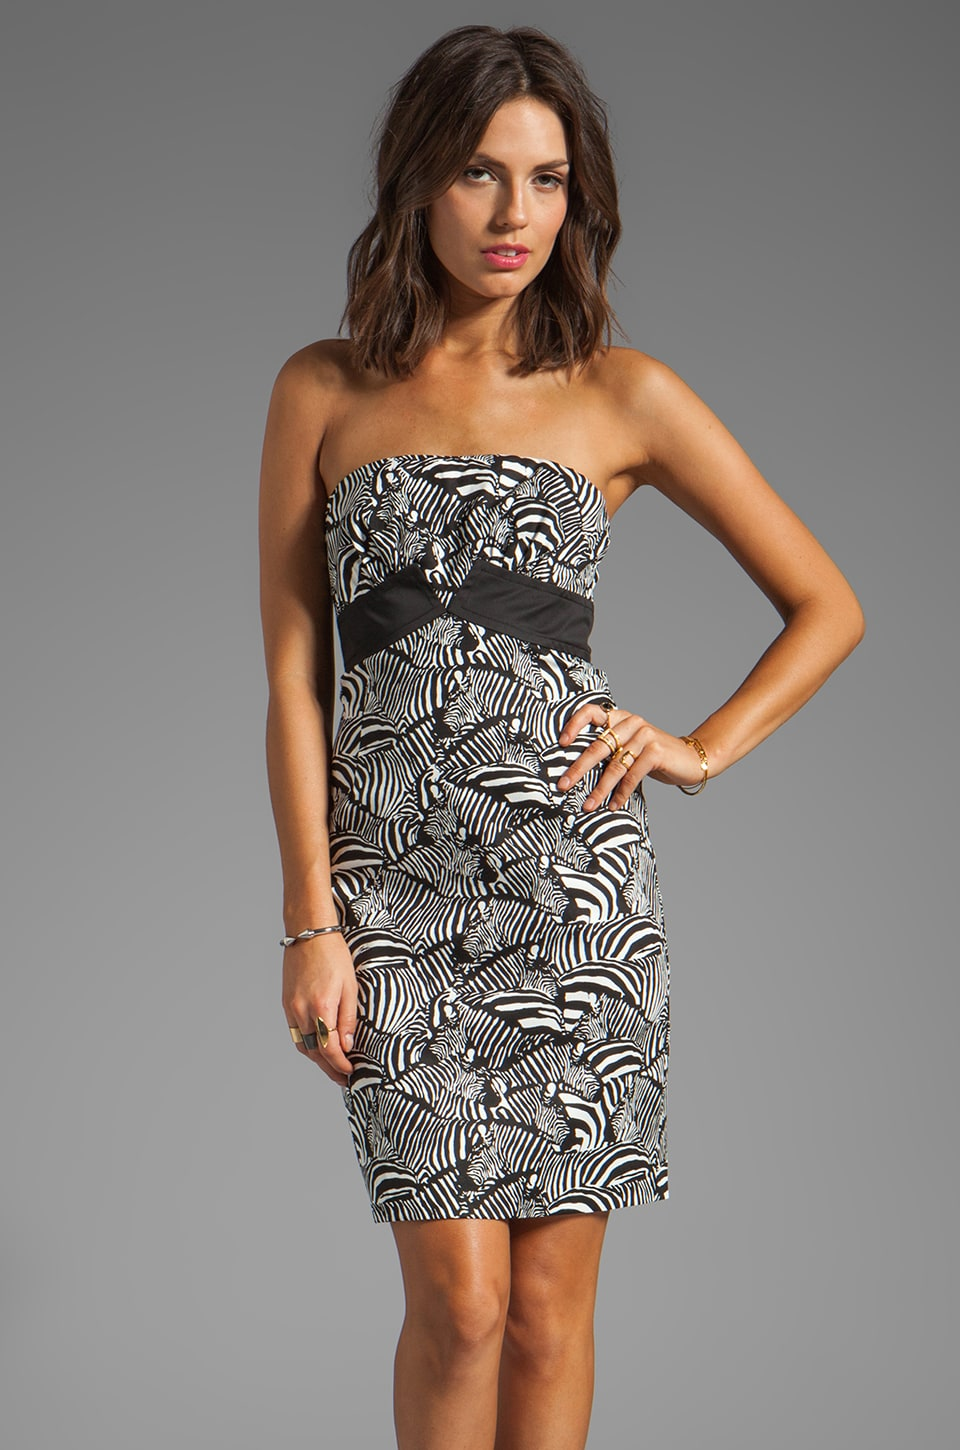 Trina Turk Zebra Stampede Texture Carolyn Dress in Black